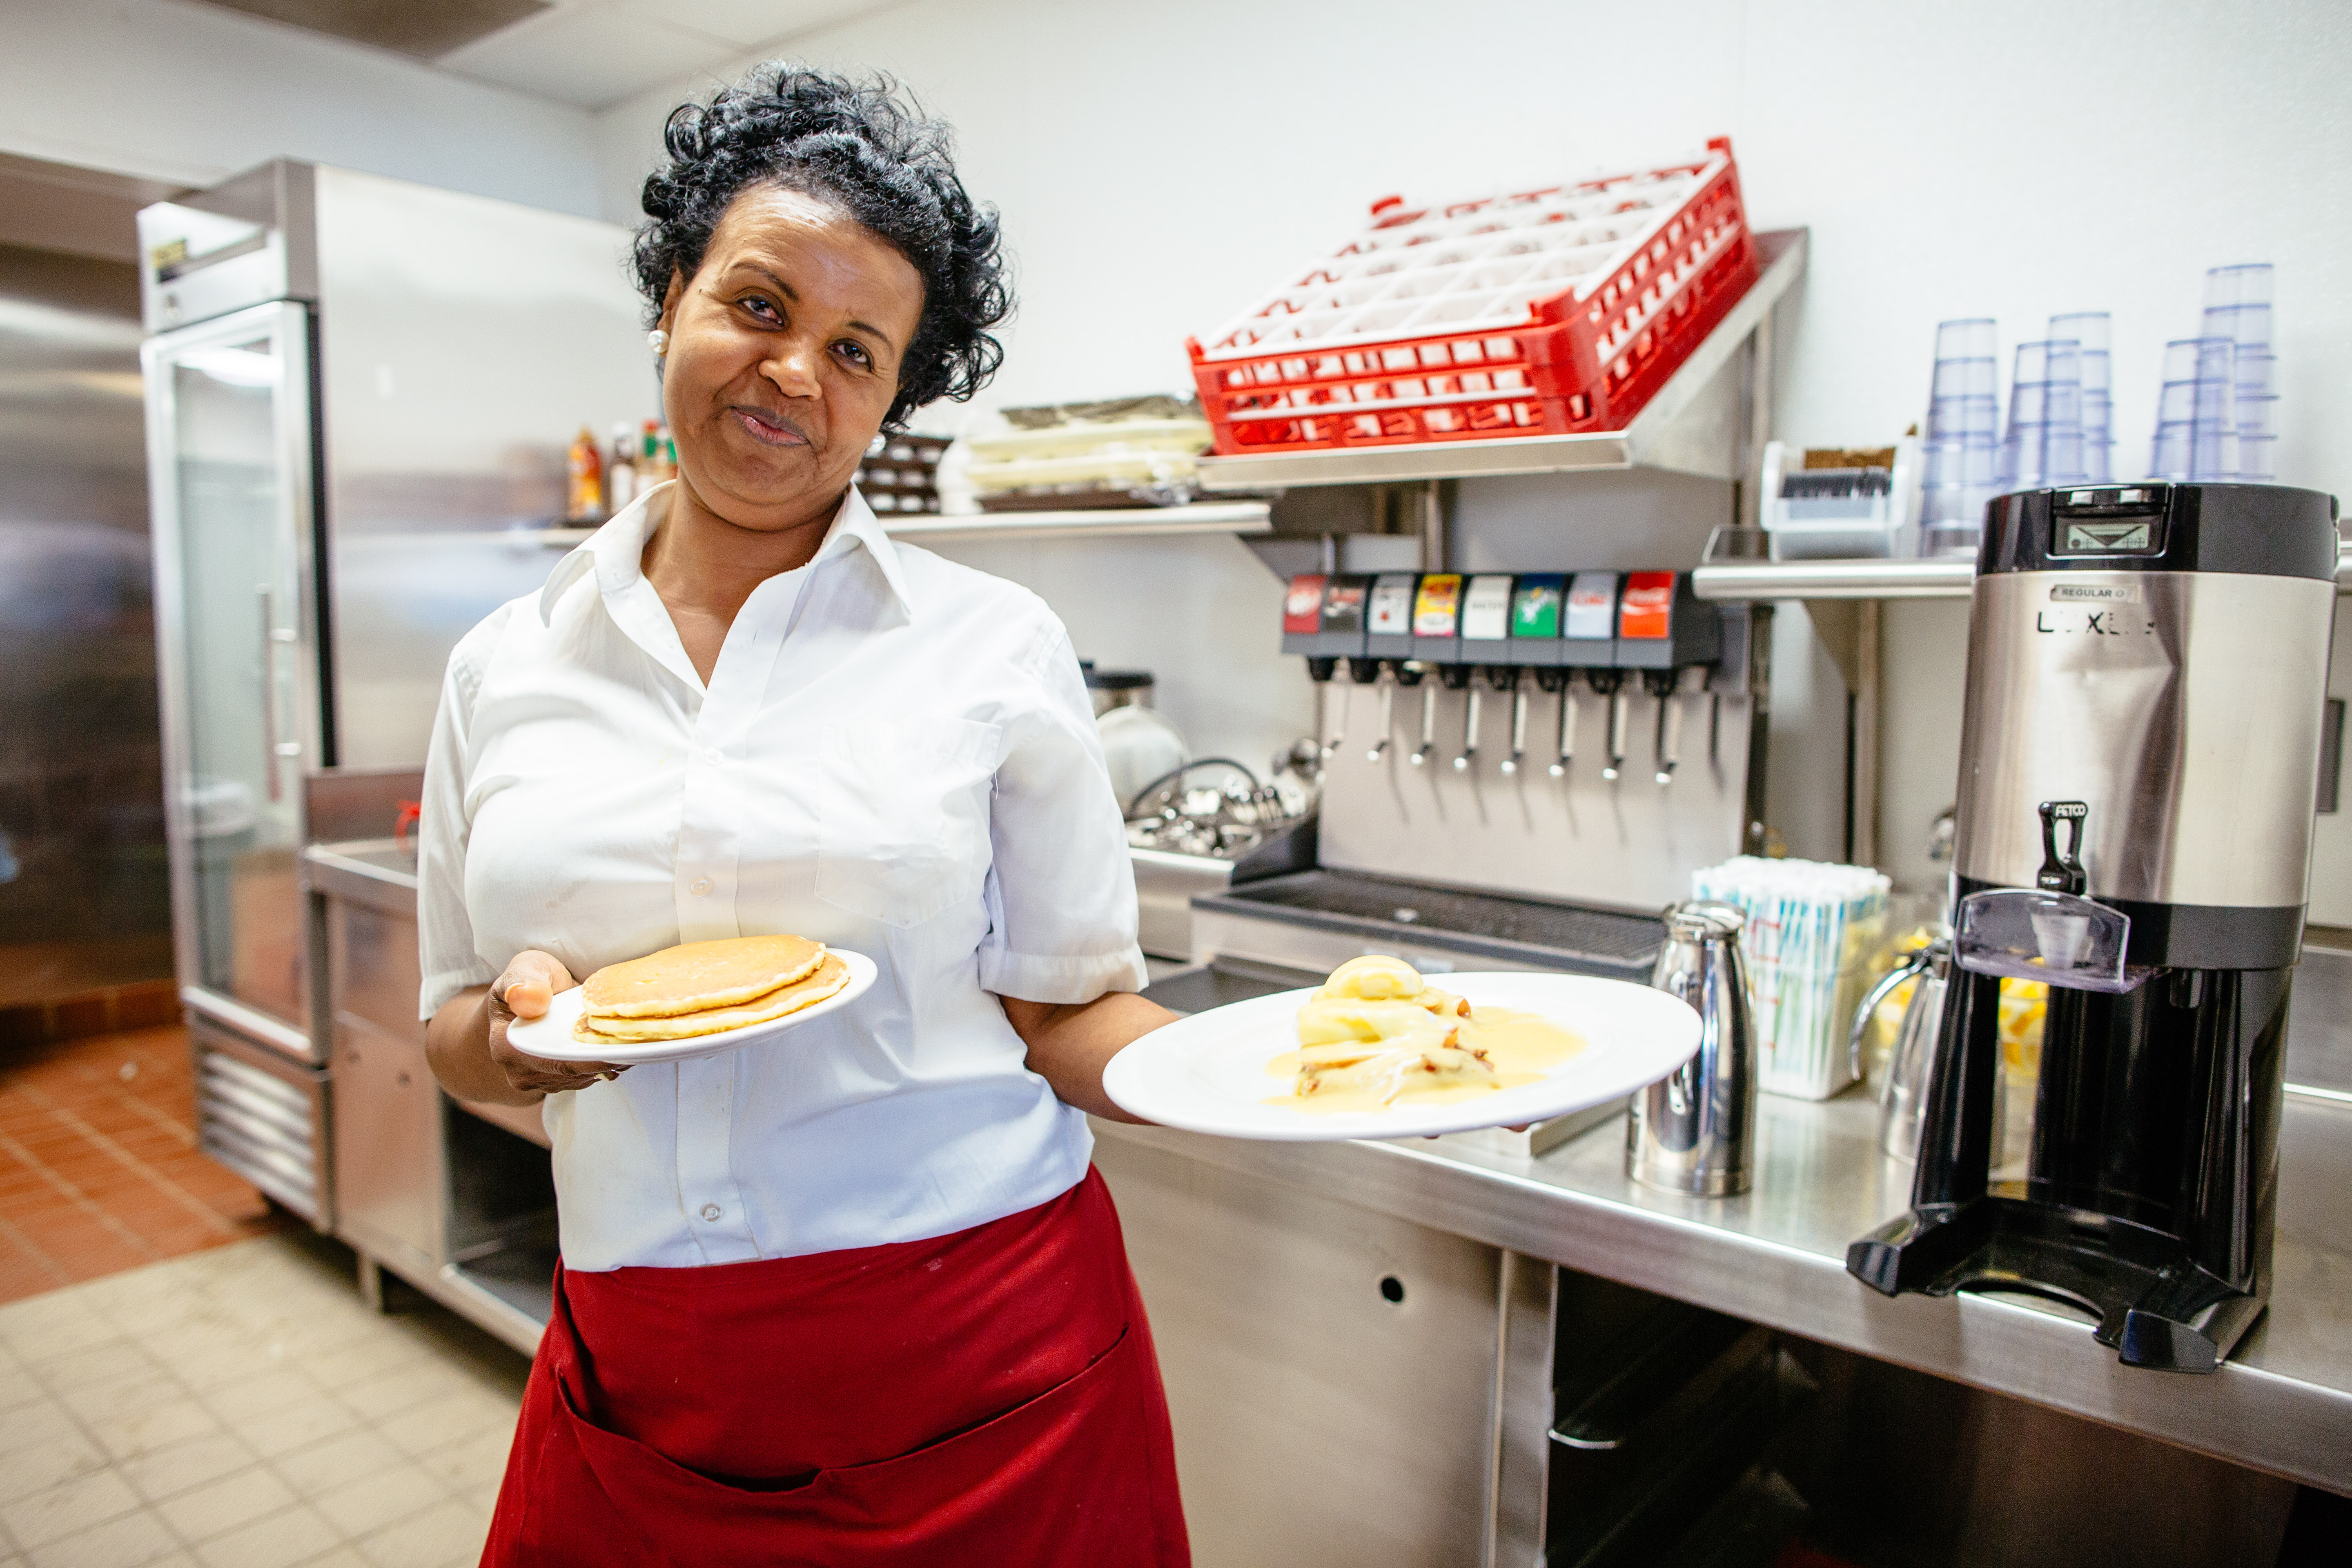 Good service and excellent pancakes are always coming right up at OPH.